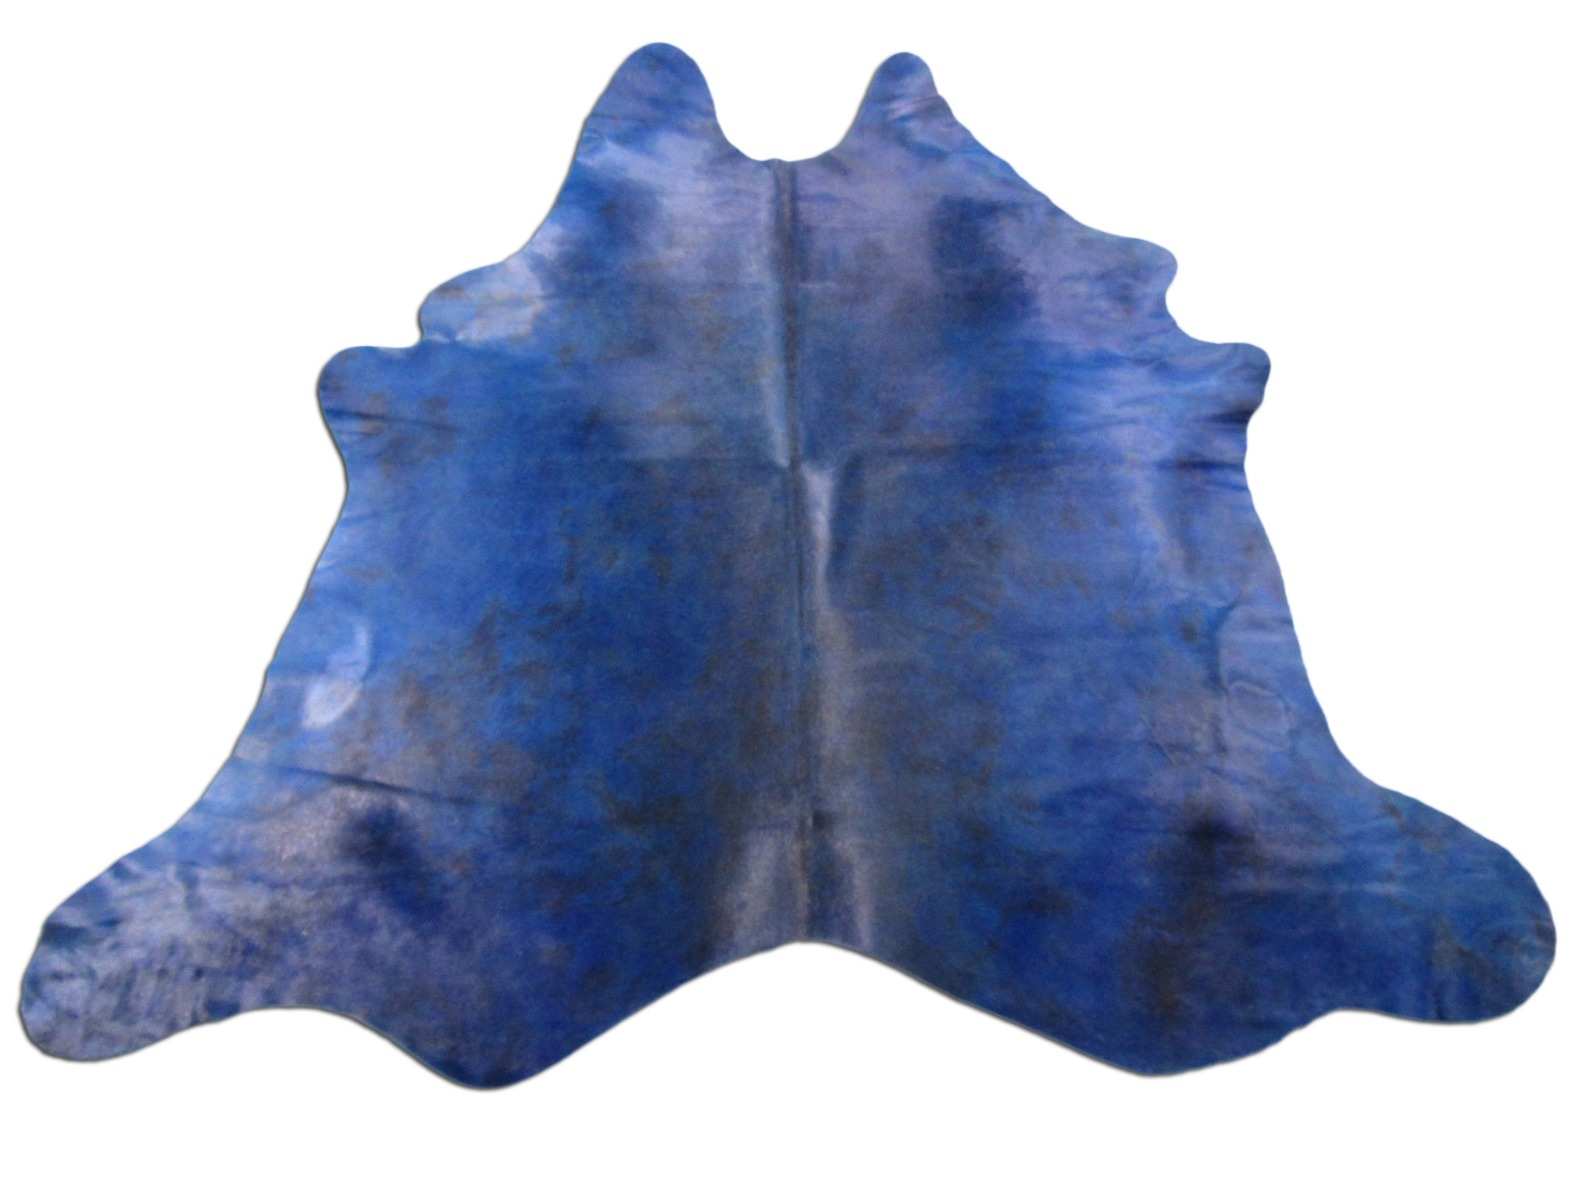 A-1457 Dyed Tie Dye Blue Cowhide Rug Size: 7' X 7'